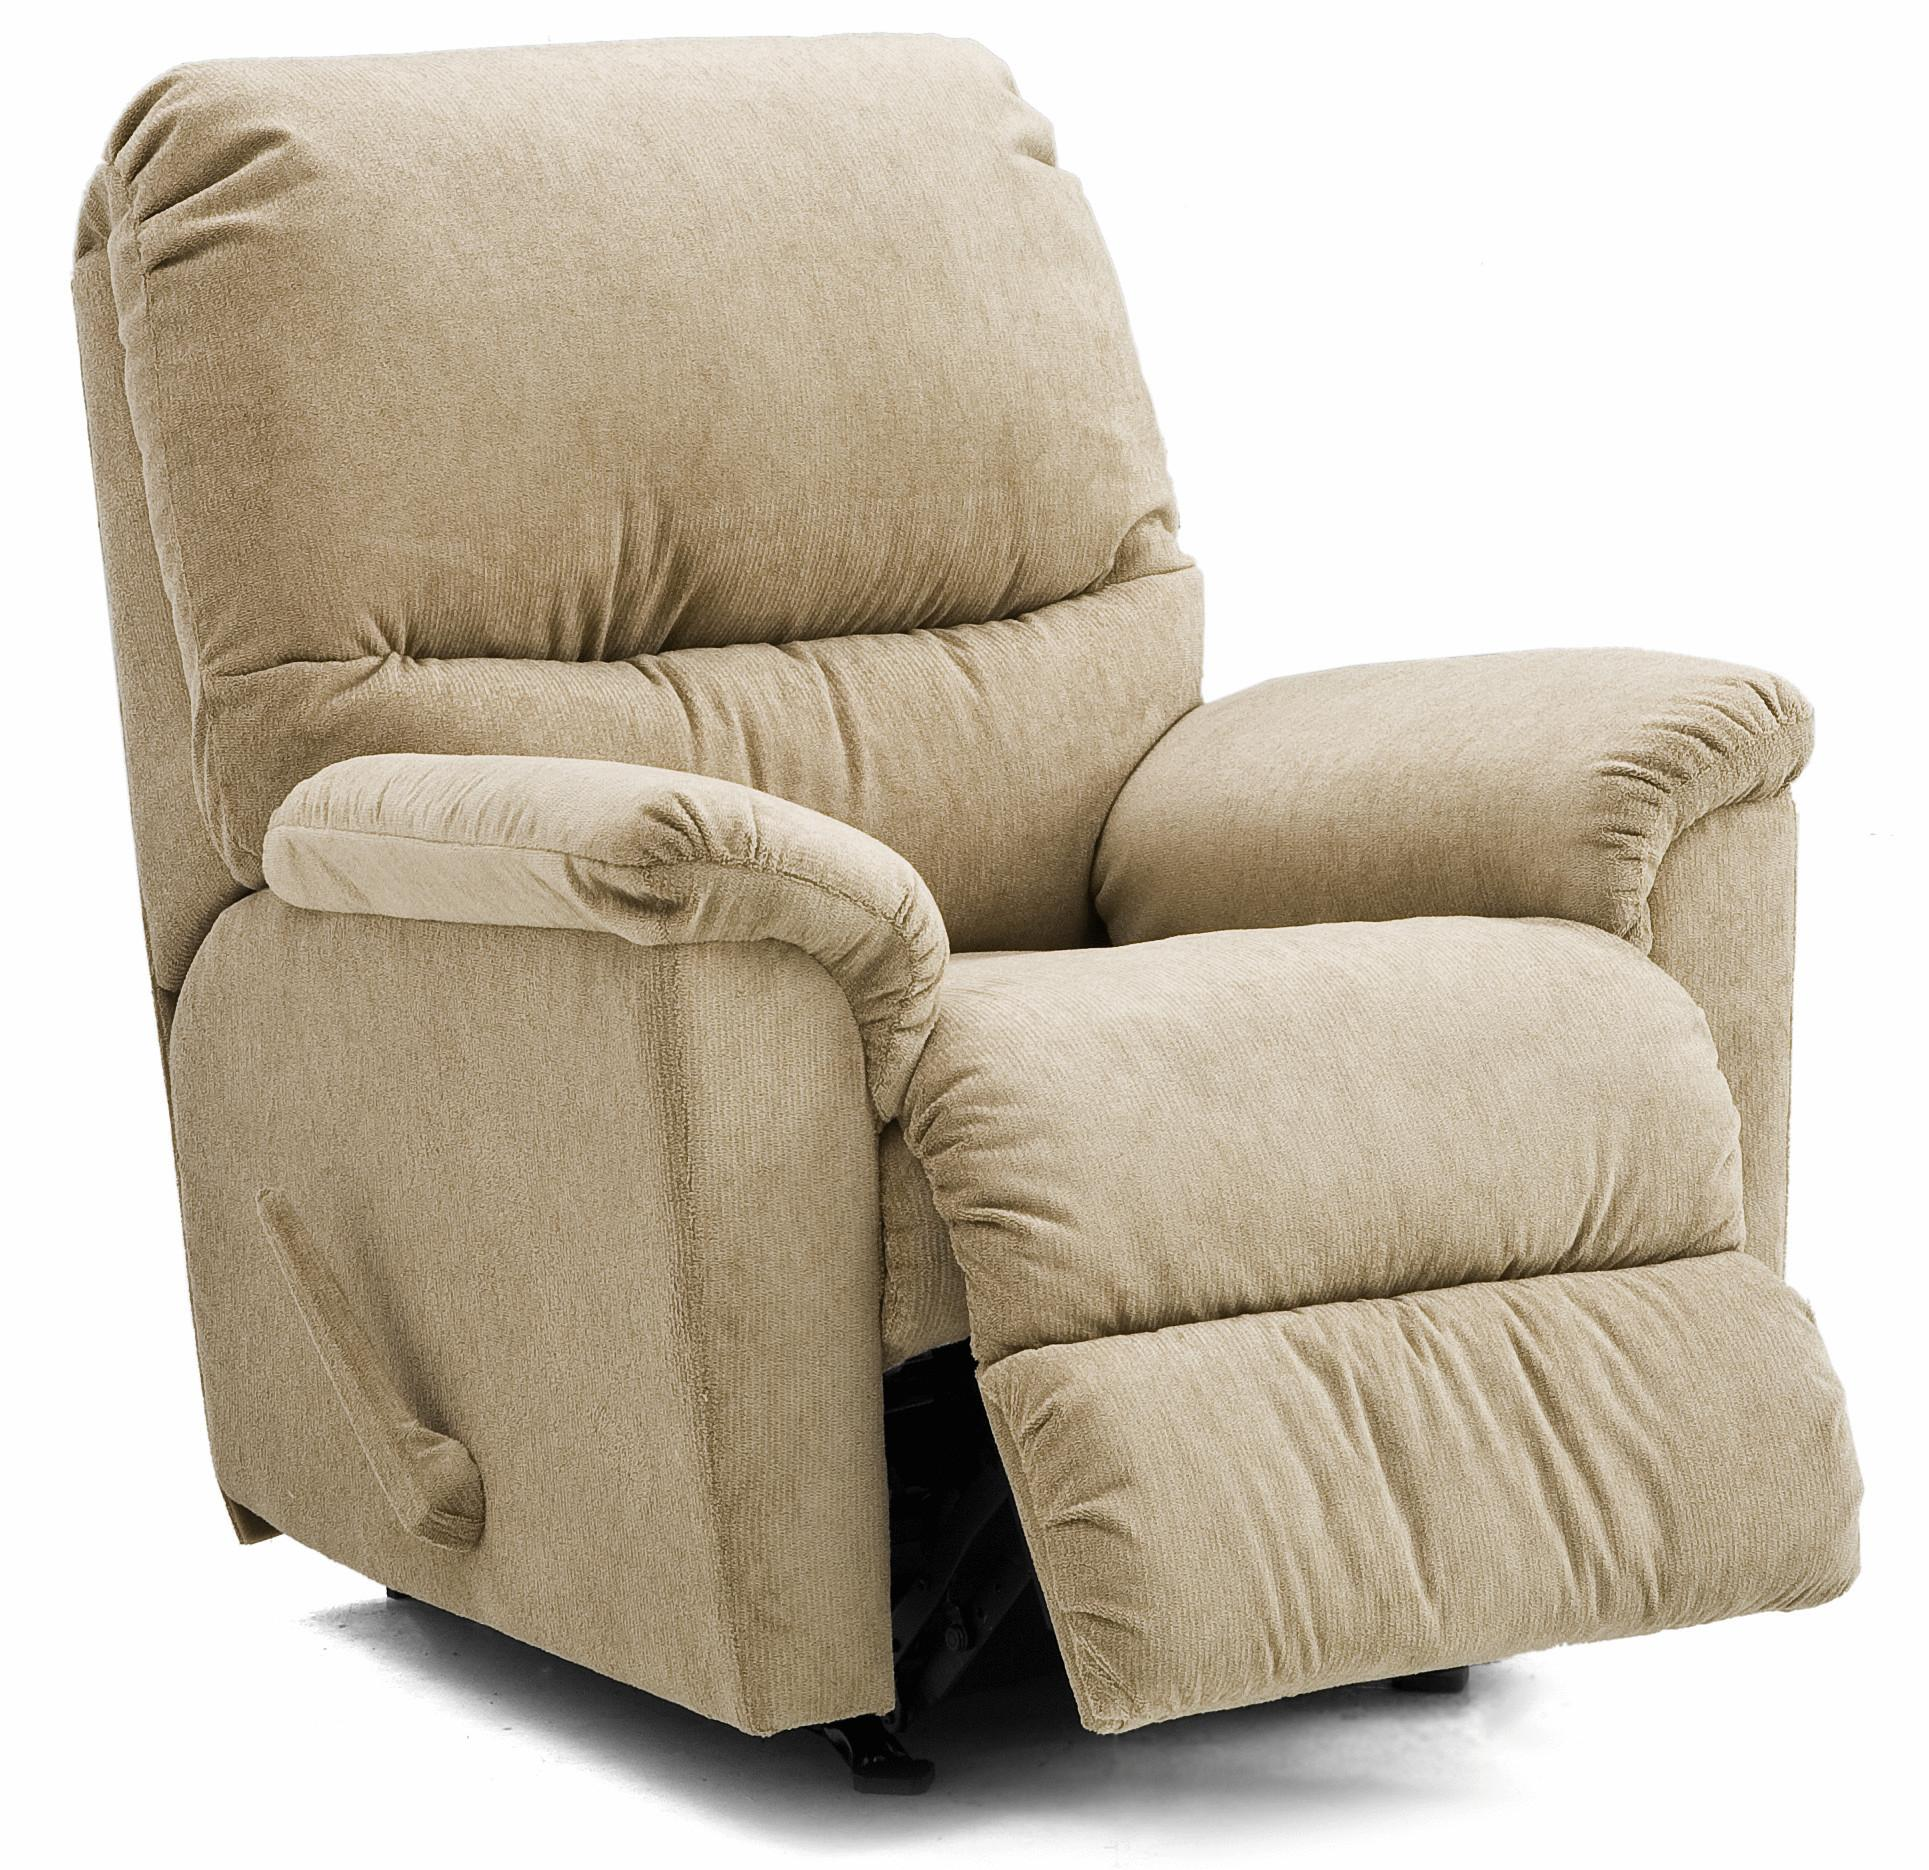 Storytime Chair Palliser Grady 48007 36 Casual Power Lift Chair With Bustle Back